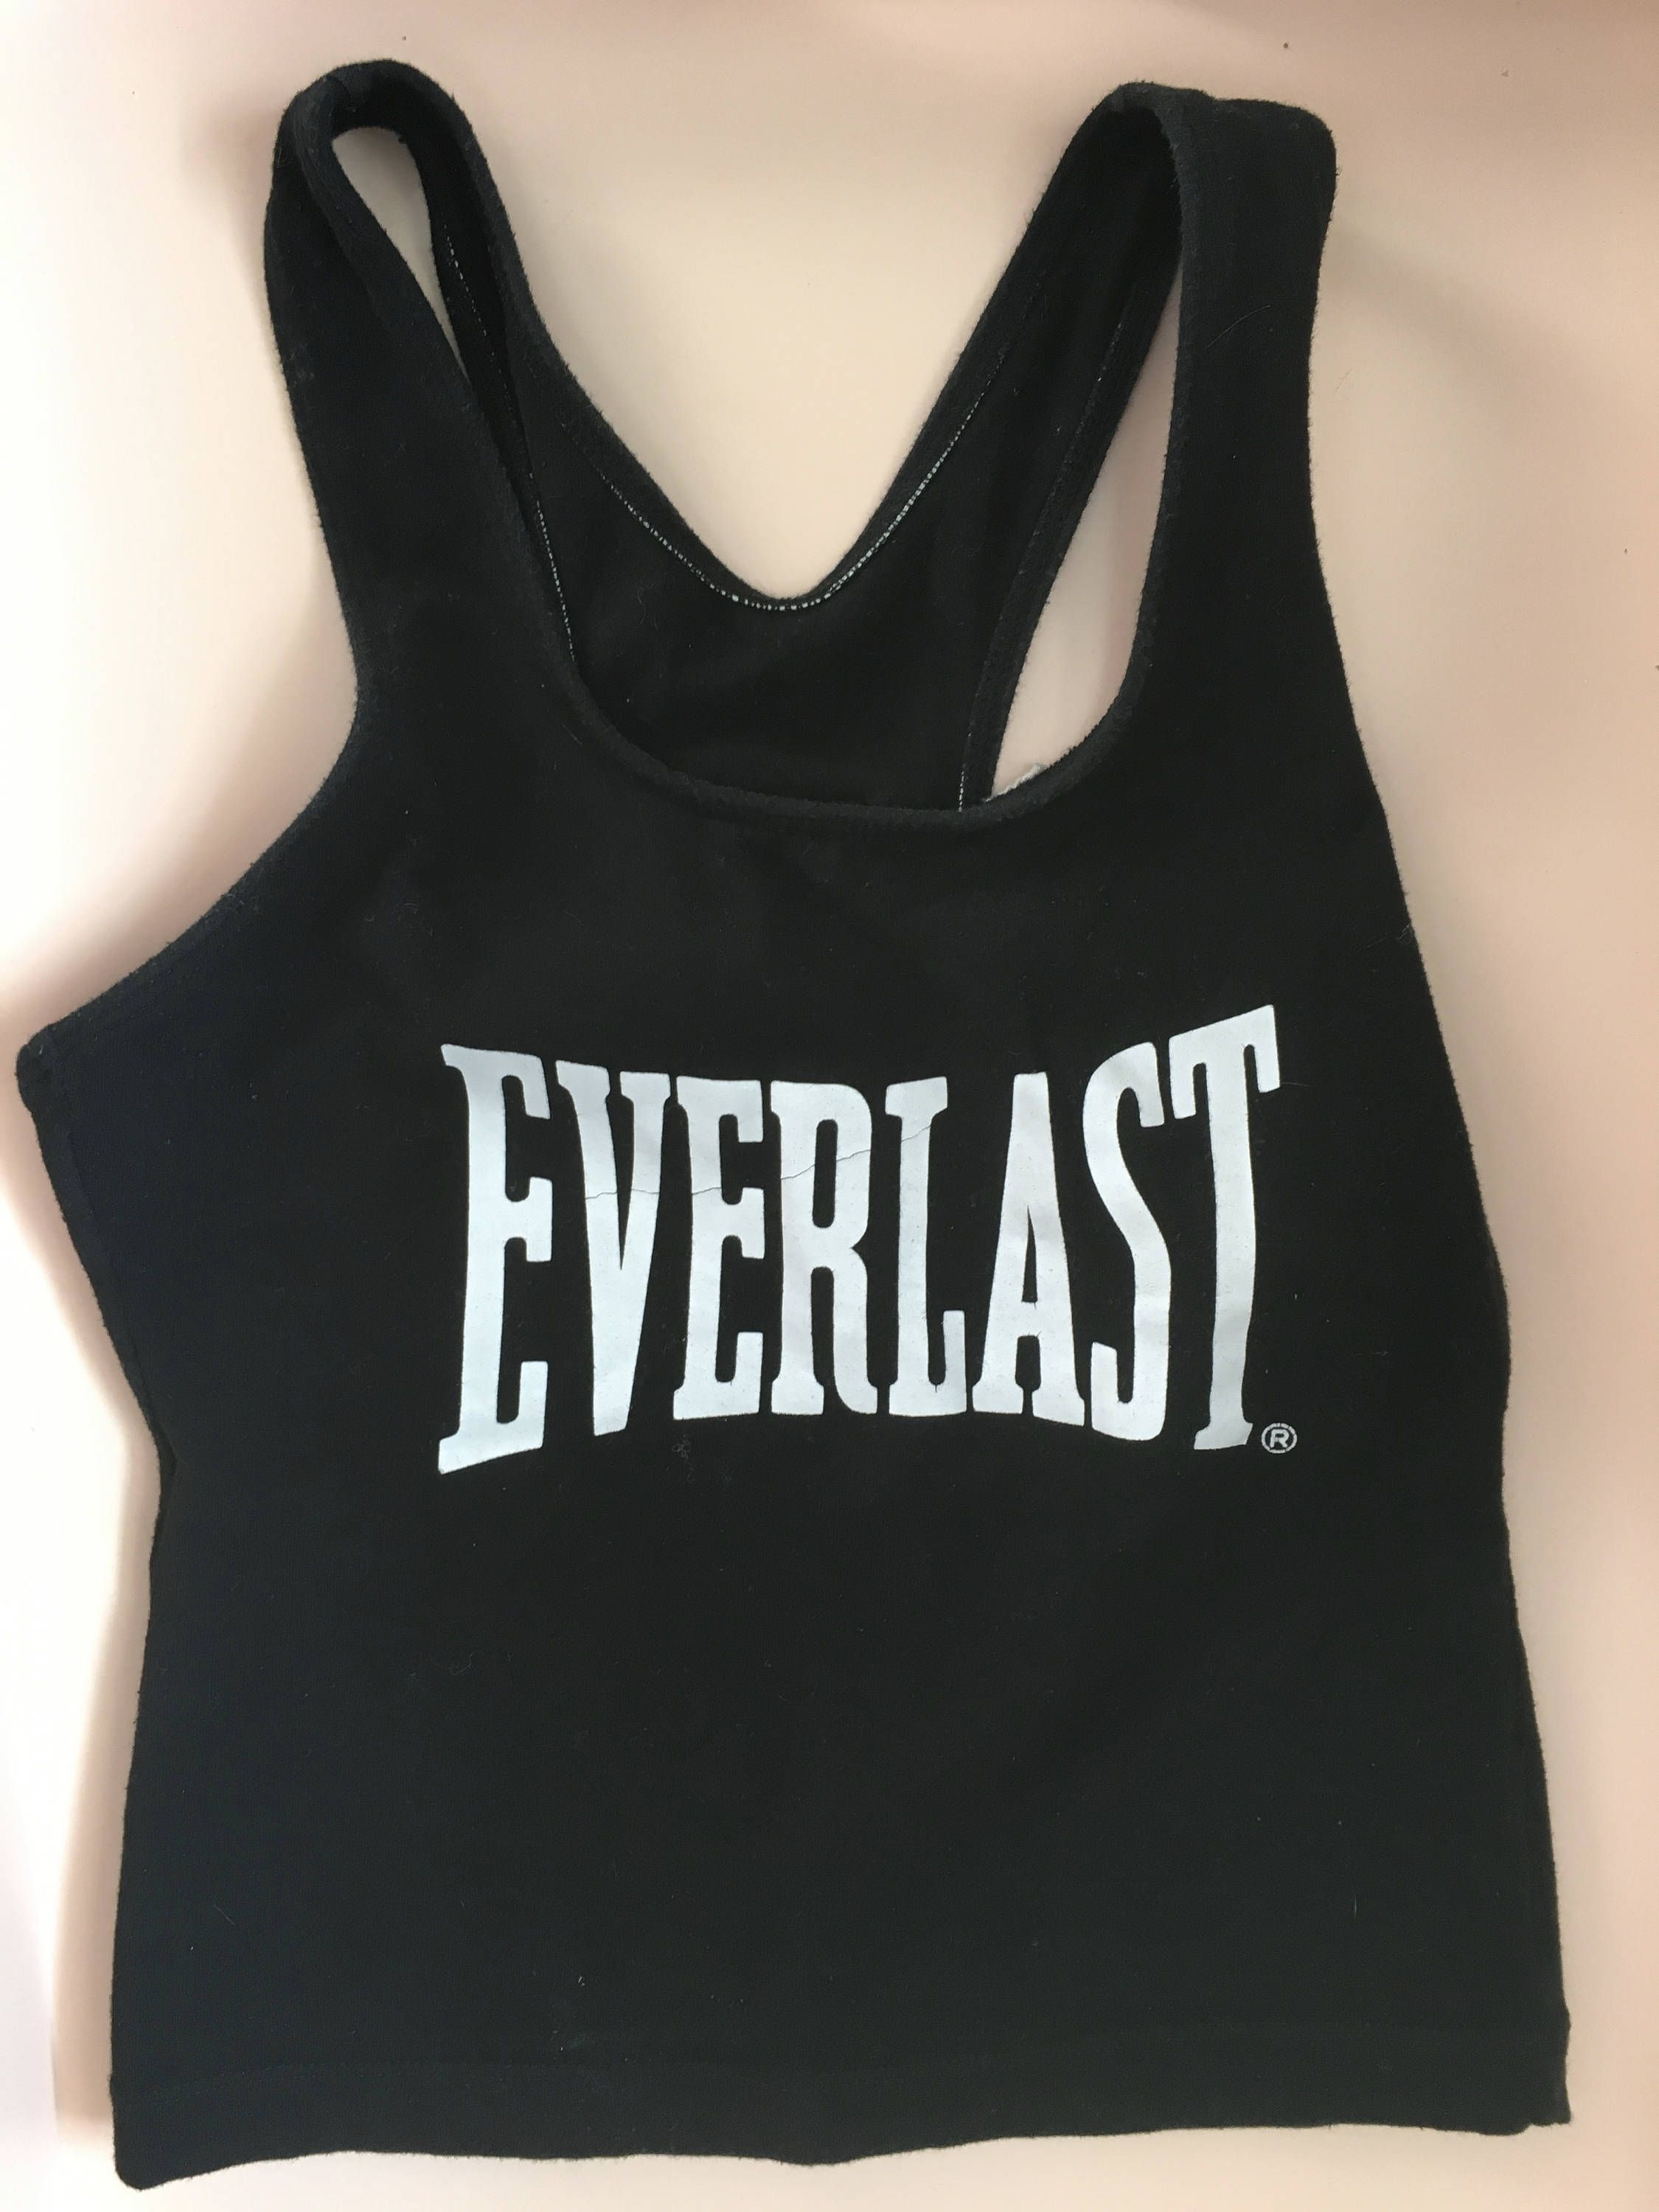 Vintage Everlast gym top - athletic wear - sports top - Women s gym  clothing - boxing brand - athletic apparel - cropped racerback tank top by  ... 7ec5aa99bba6